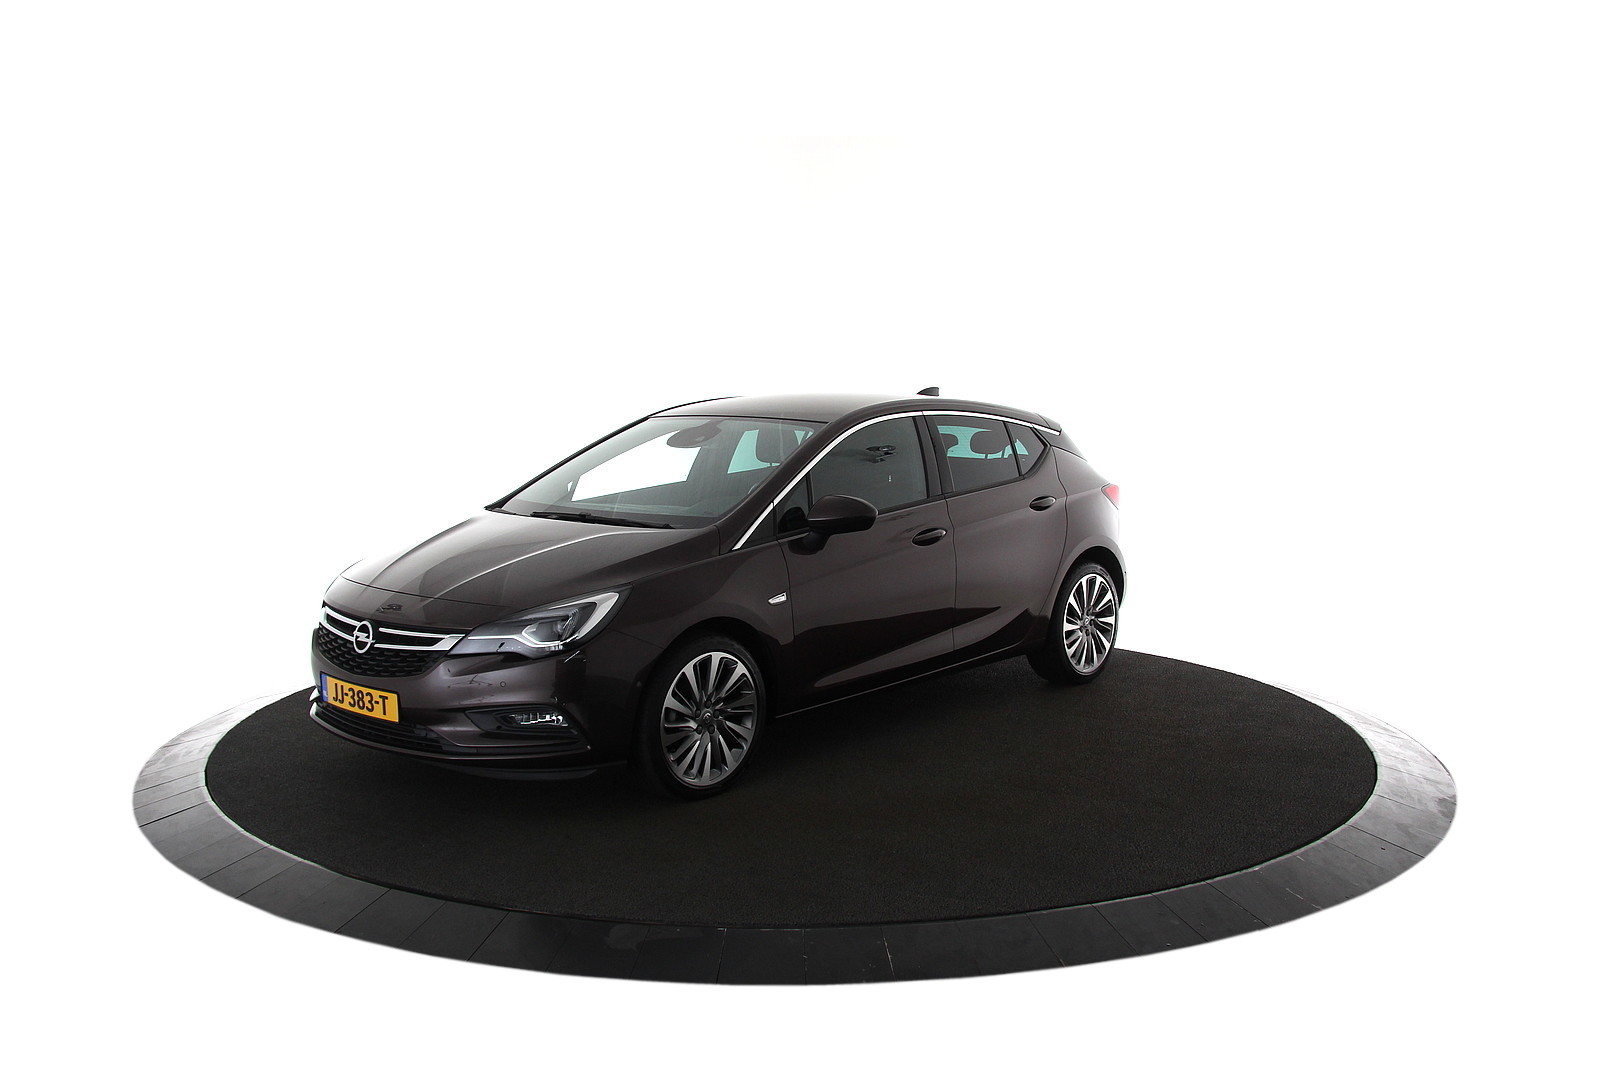 Opel Astra 1.4 Innovation Automaat